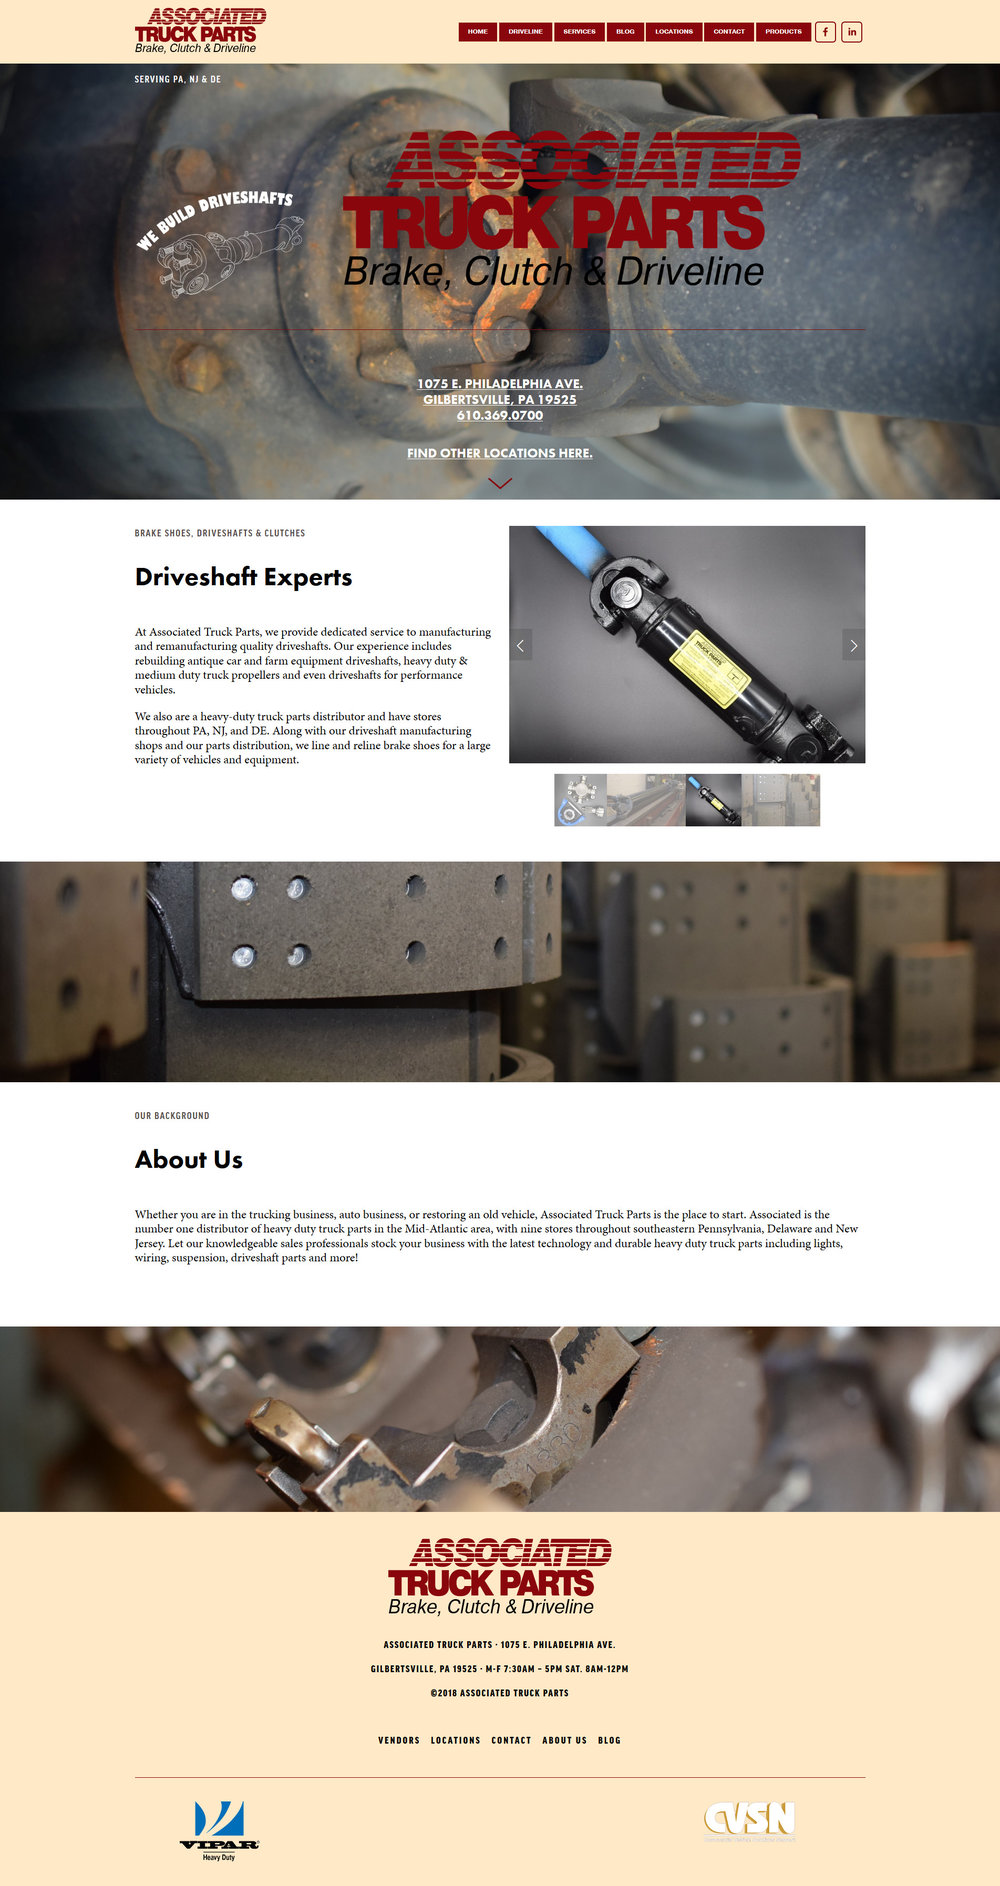 Screenshot of Associated Truck Parts' website